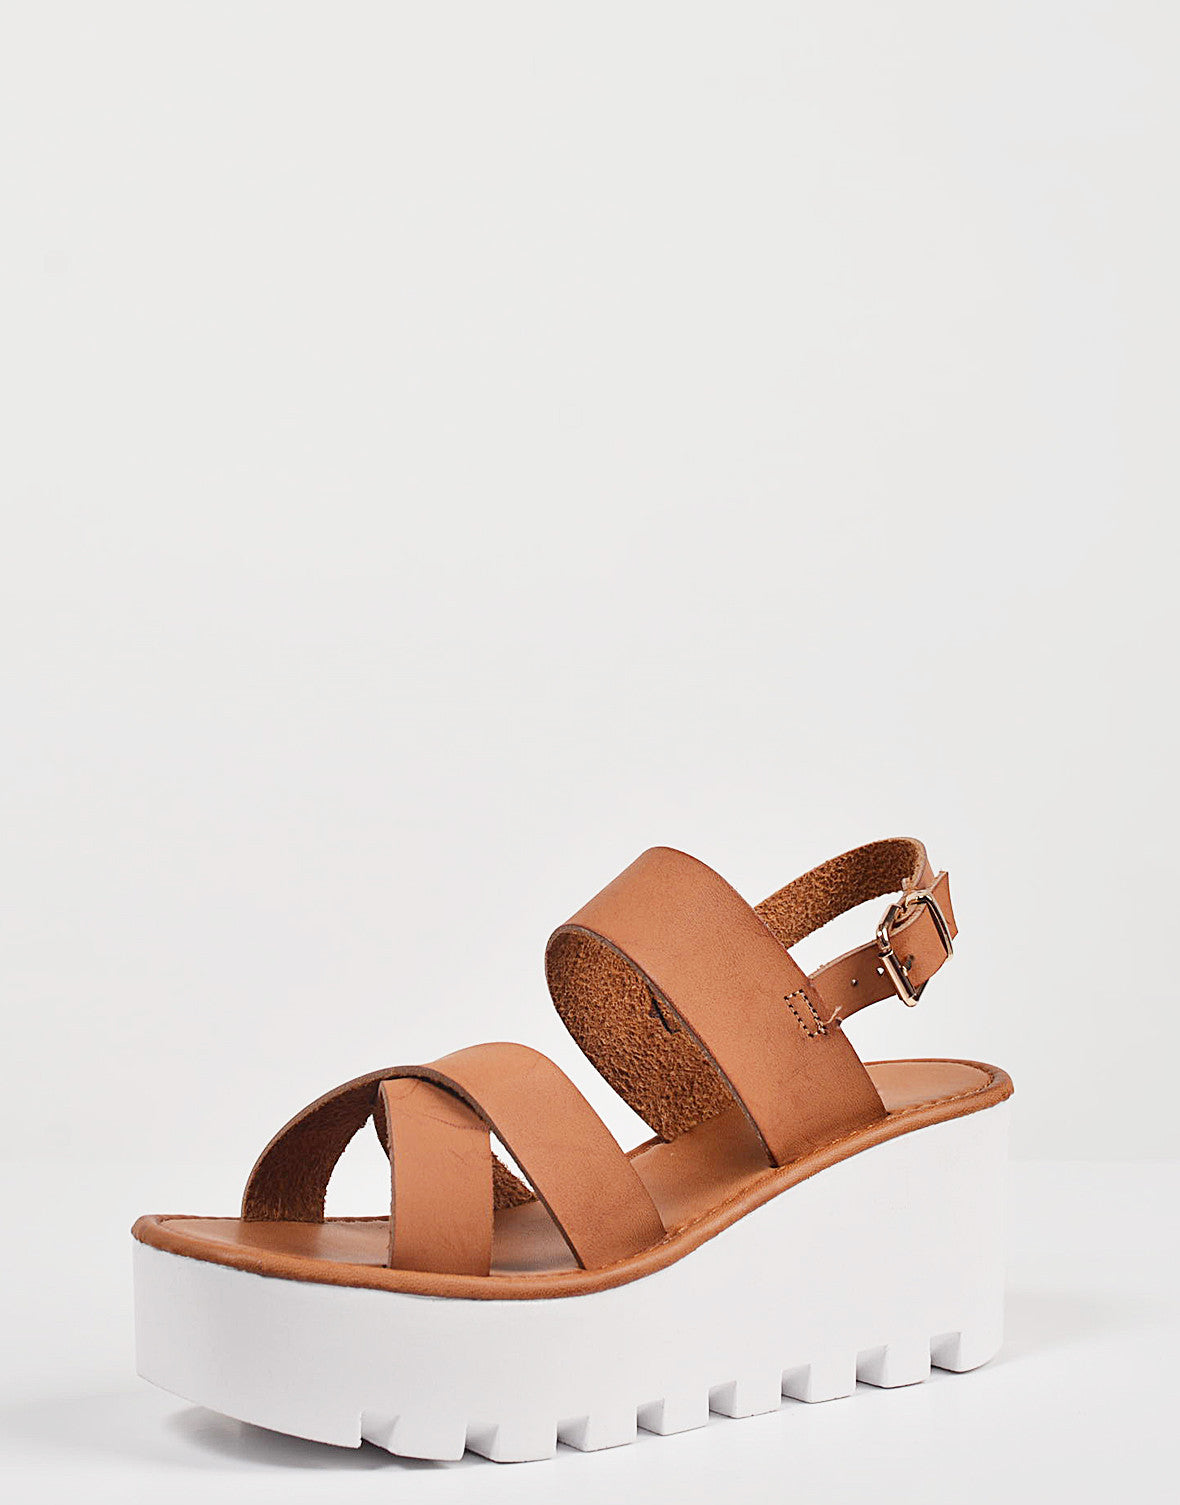 Detail of Crossover Slingback Wedge Sandals